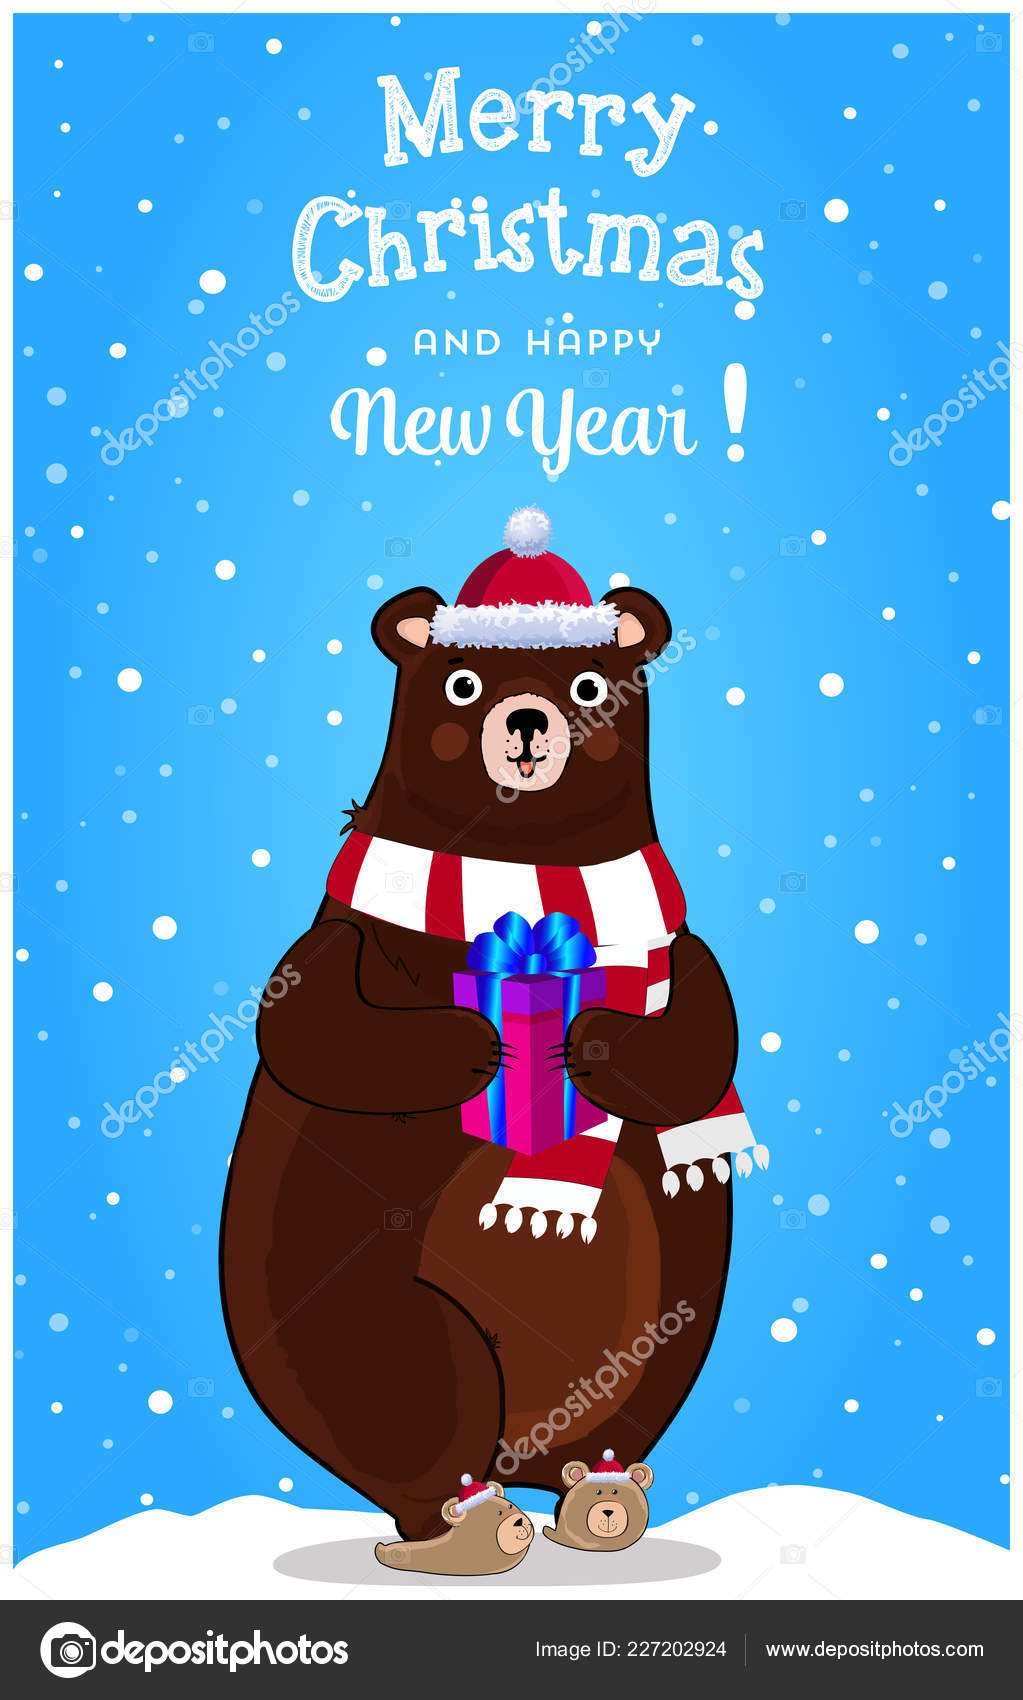 merry christmas happy new year greeting card cute cartoon cheerful stock vector